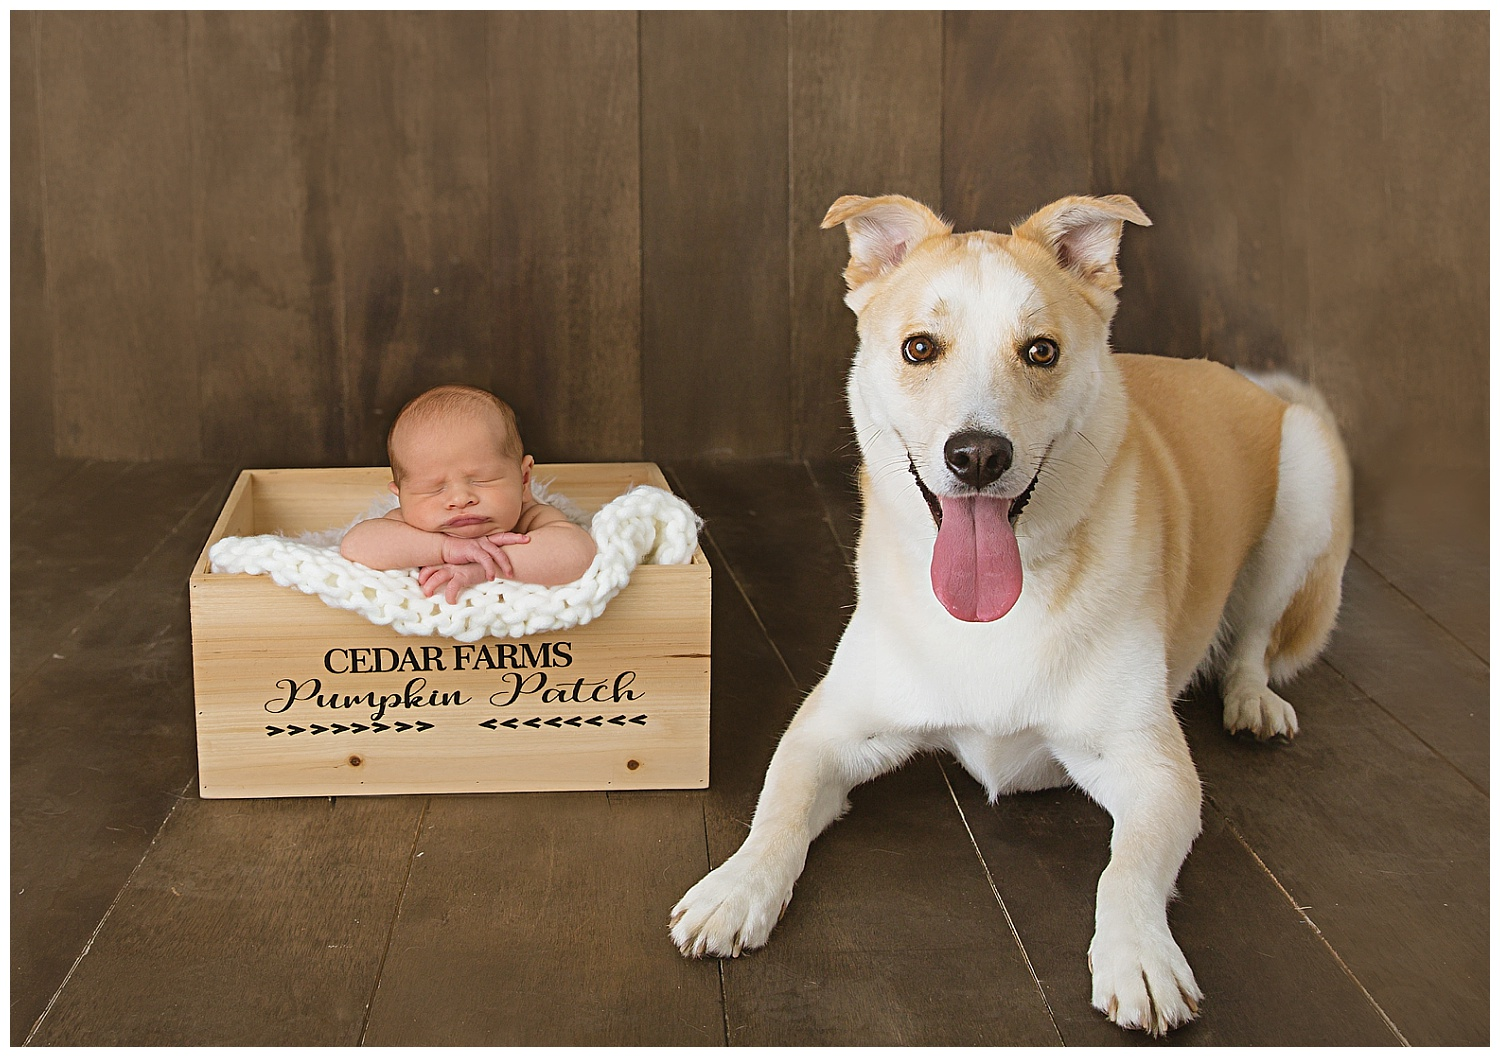 newborn baby in a box with dog next to him in burlington new jersey studio